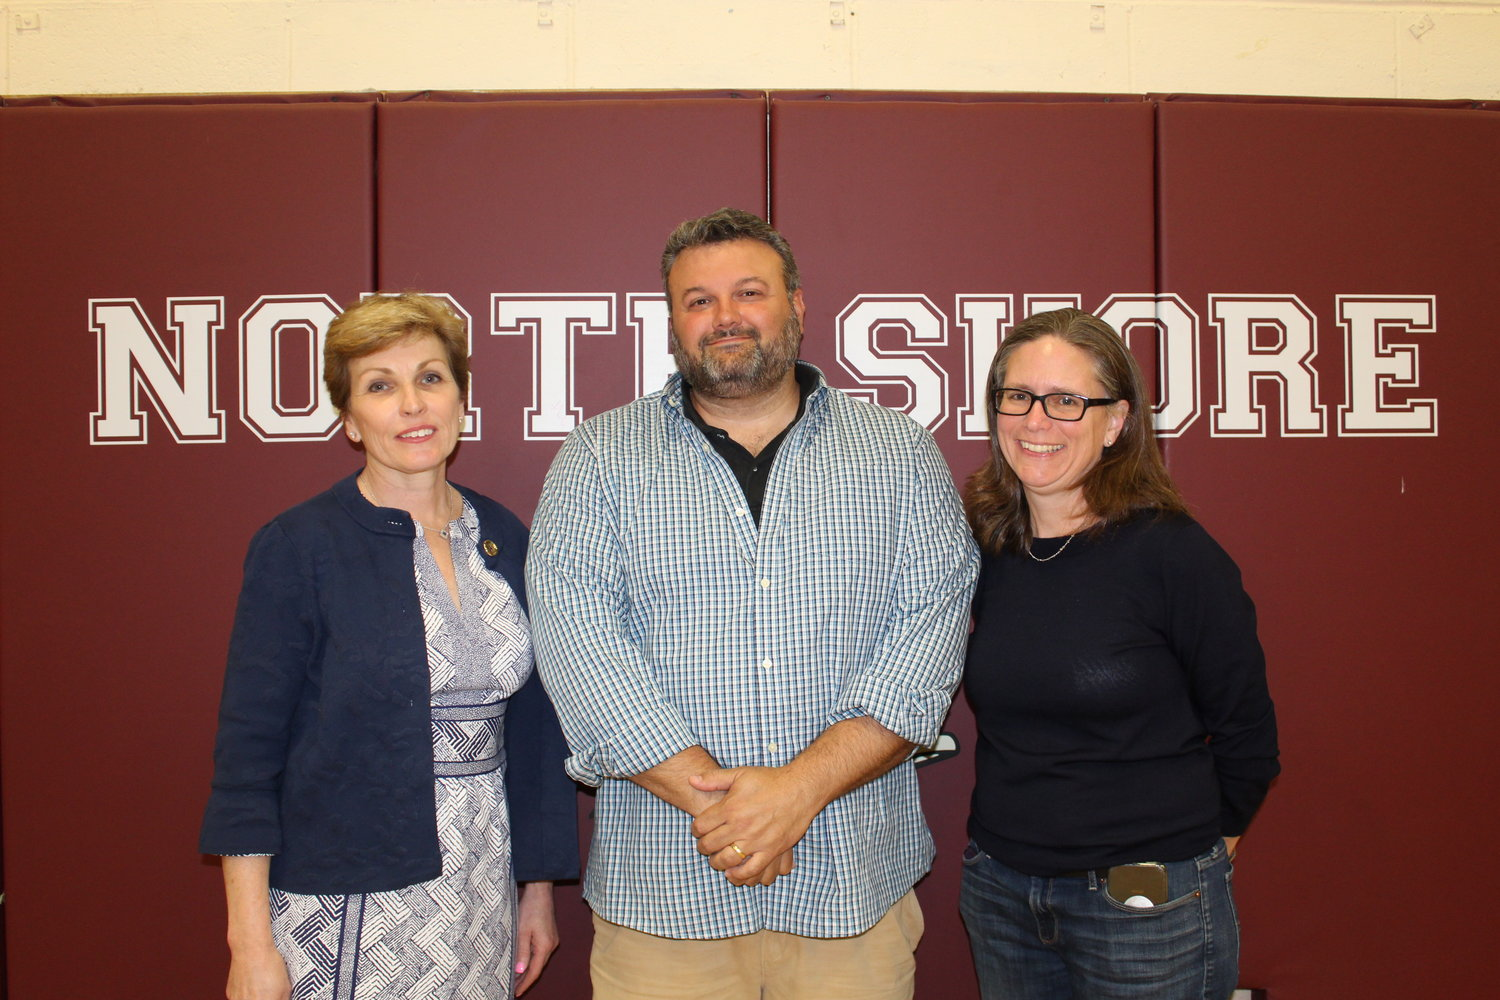 School board trustees Marianne Russo, left, David Ludmar and Sara Jones were re-elected to their seats Tuesday night.